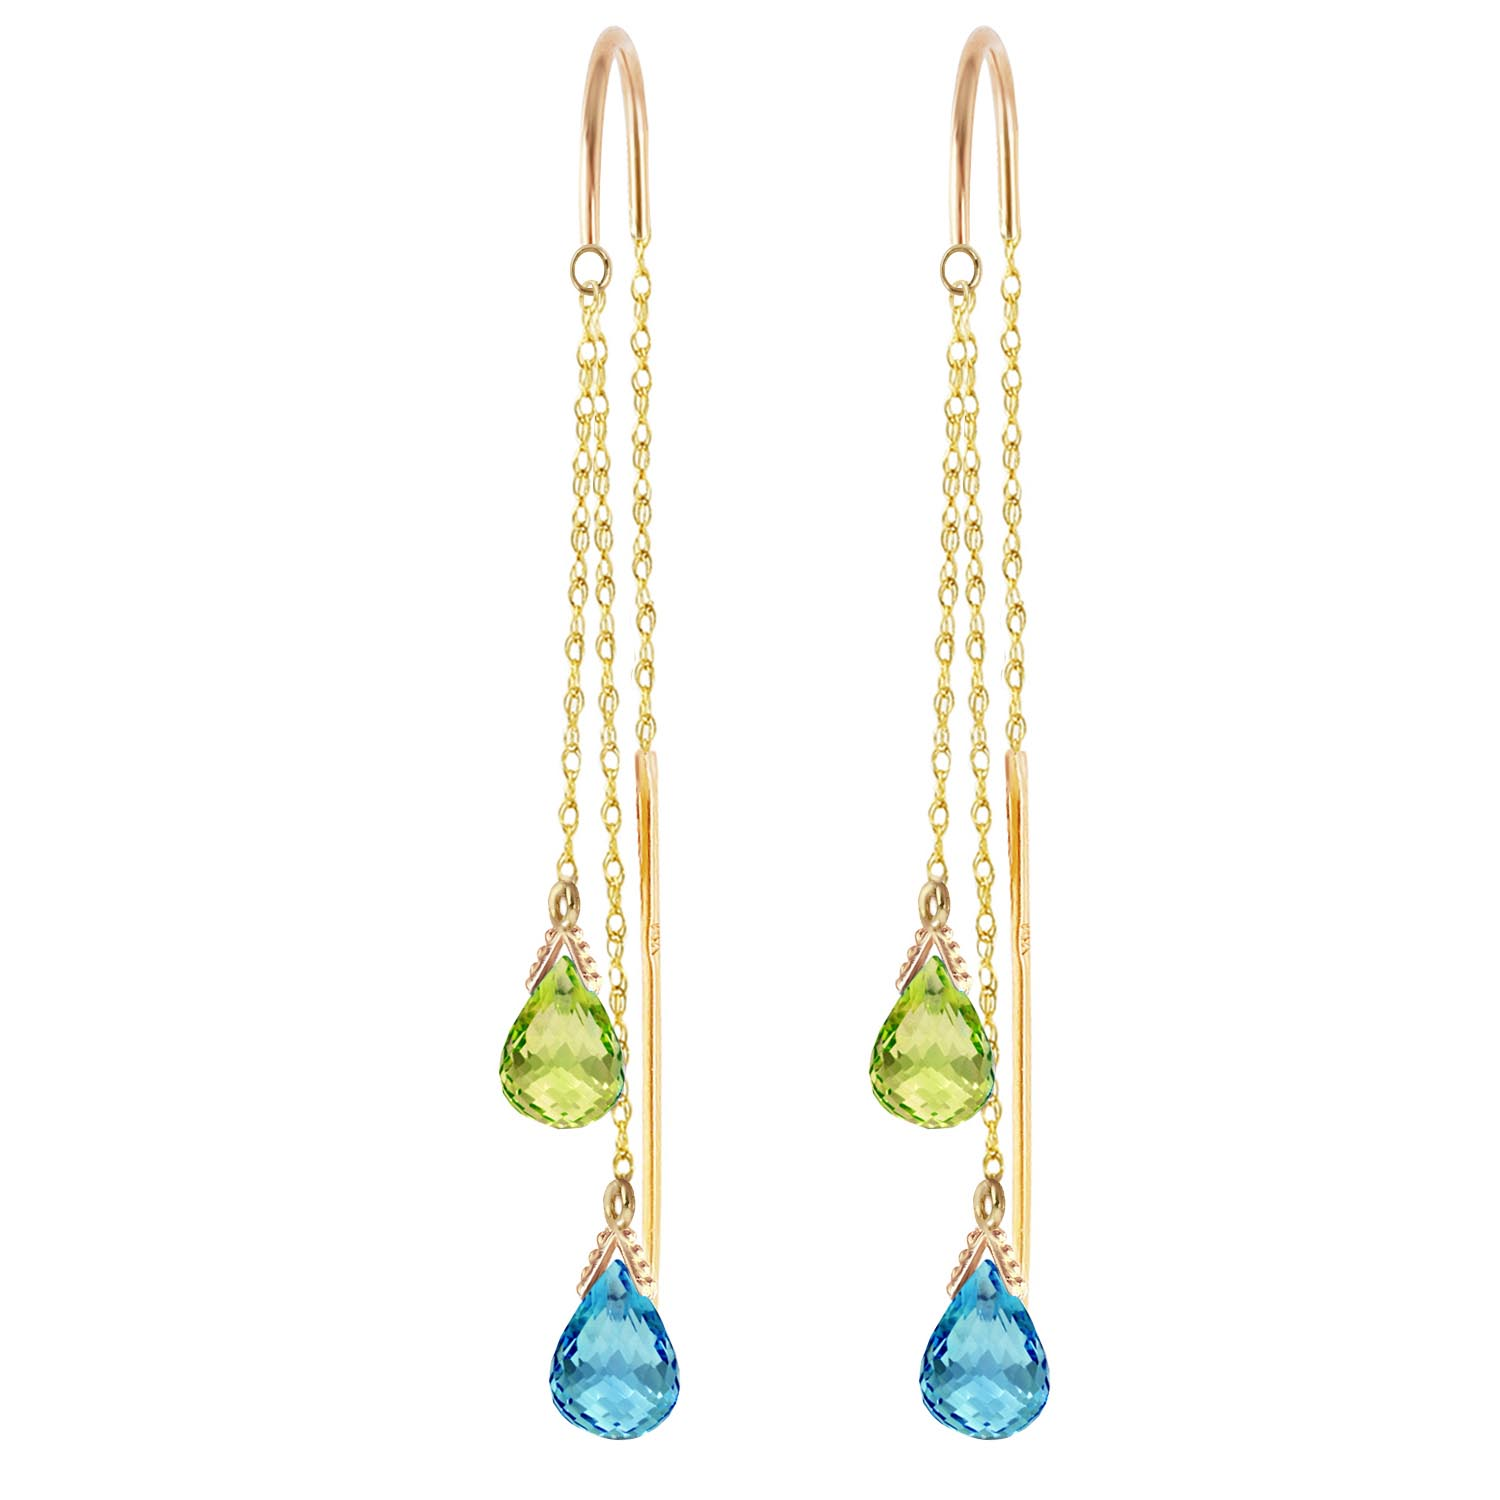 Blue Topaz and Peridot Scintilla Earrings 2.5ctw in 9ct Gold